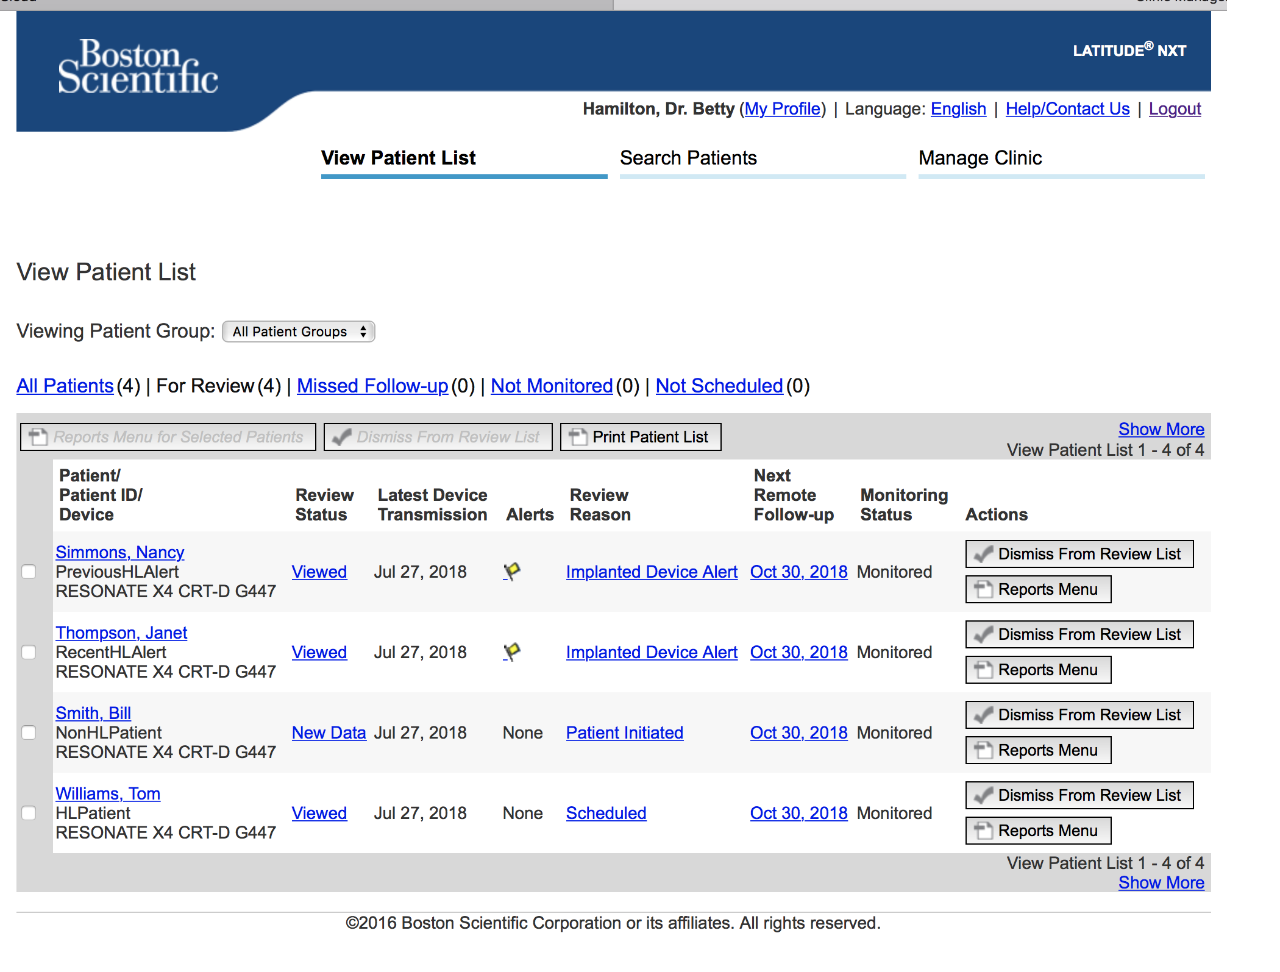 LATITUDE NXT Website Screen Showing Patient Organization Options